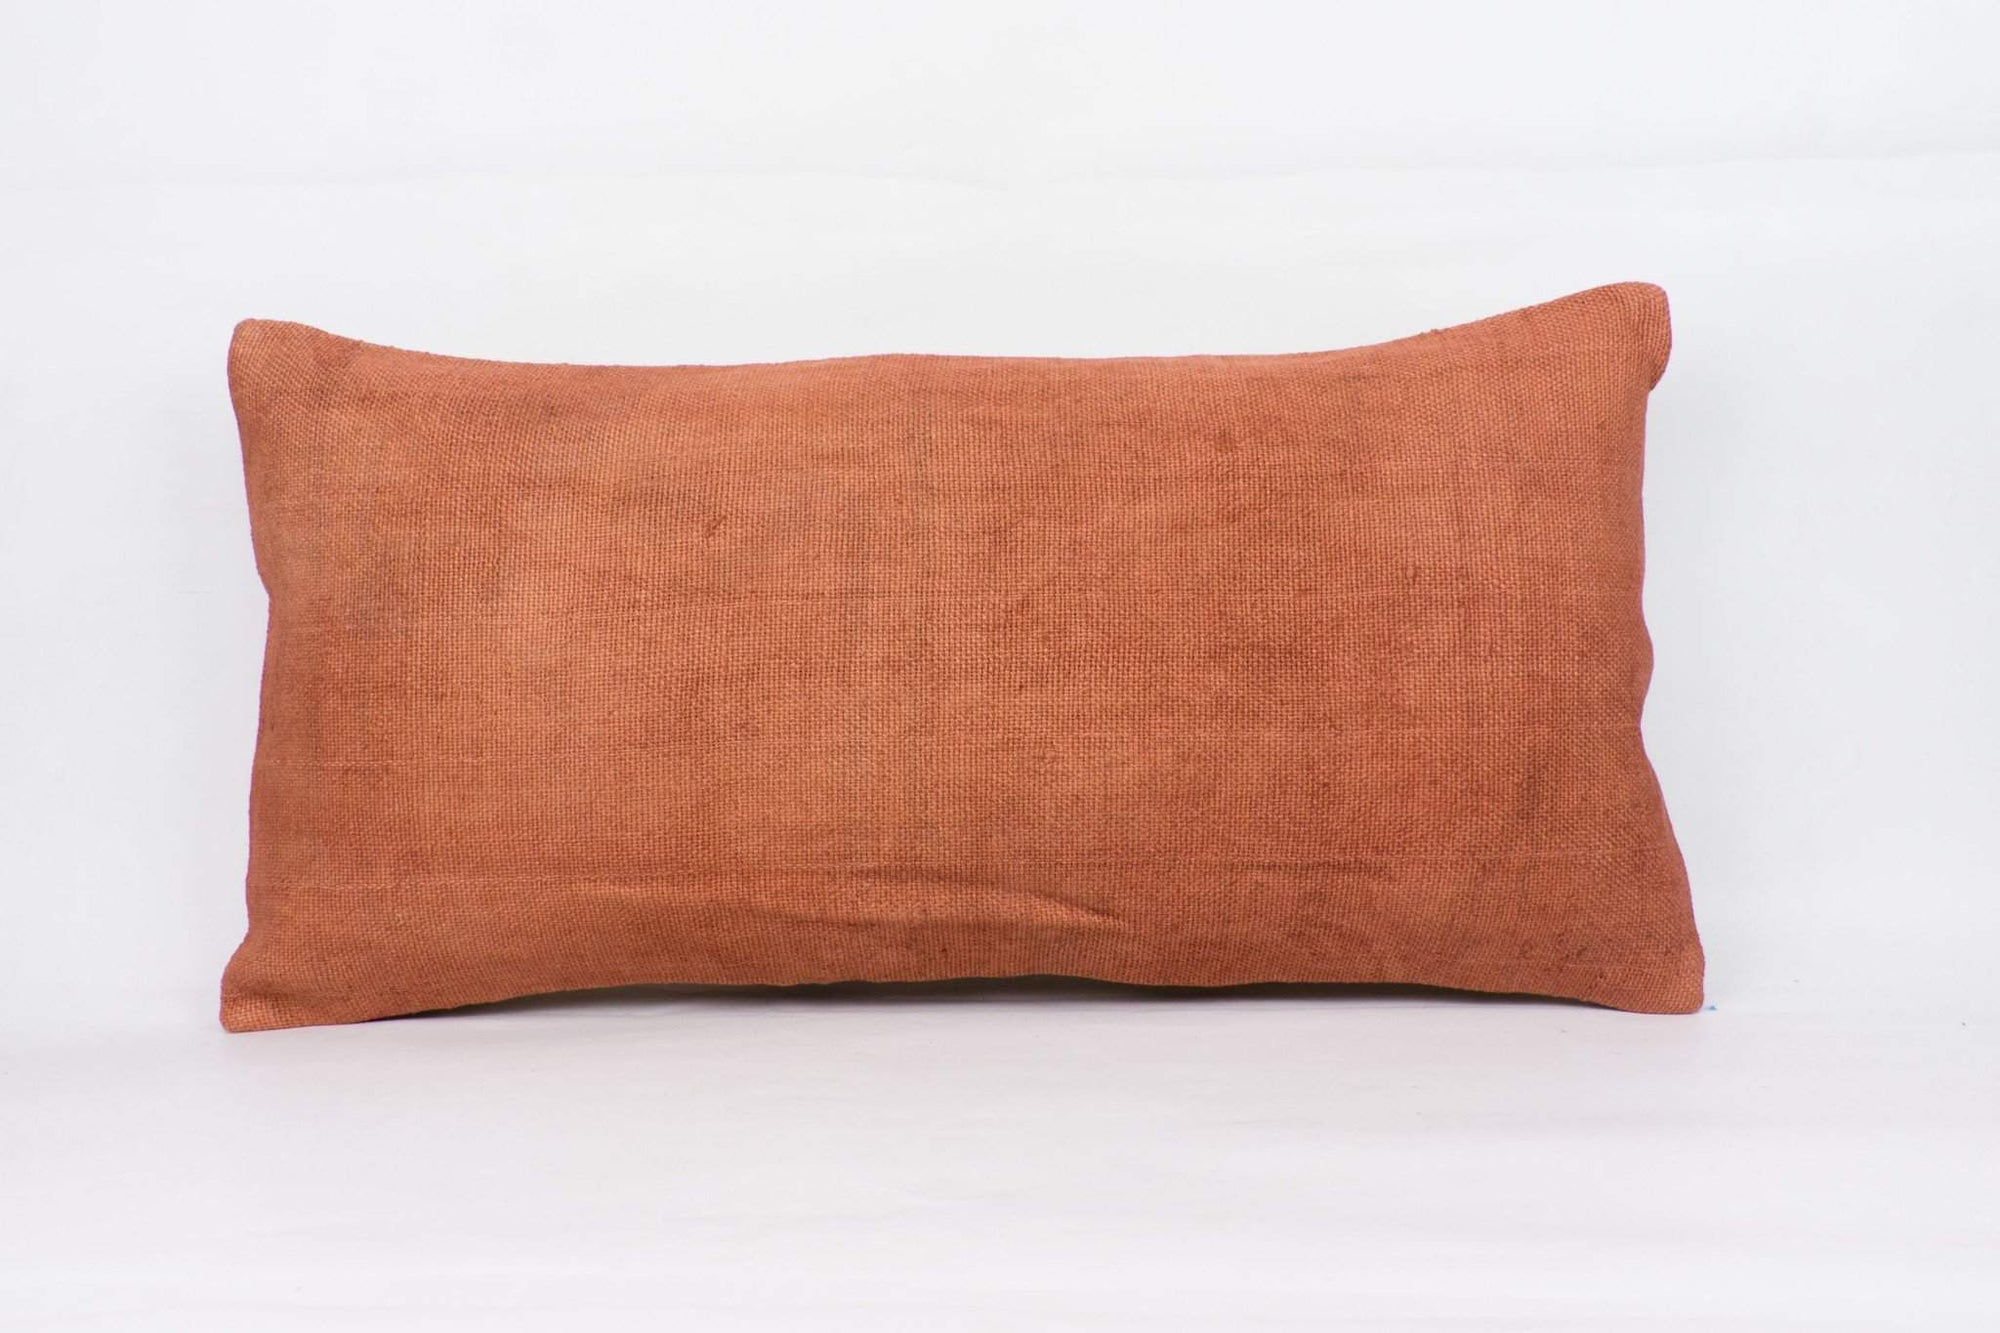 Plain Brown Kilim Pillow Cover 12x24 4197 - kilimpillowstore  - 1